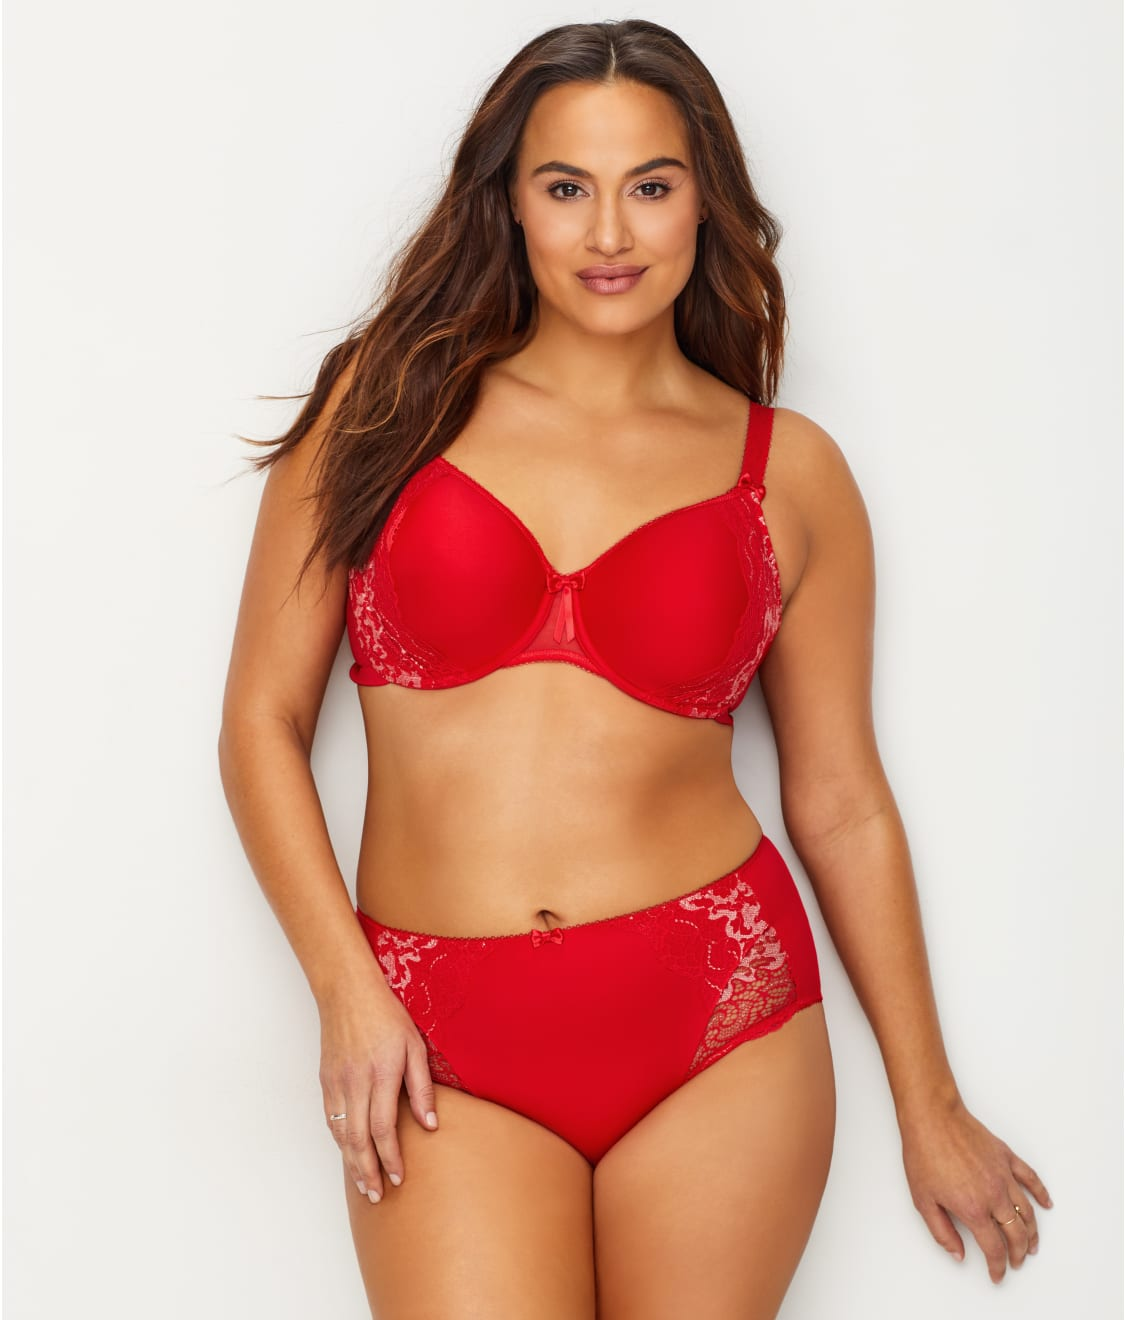 9b0afb74377 See Amelia T-Shirt Bra in Red. Elomi  ...